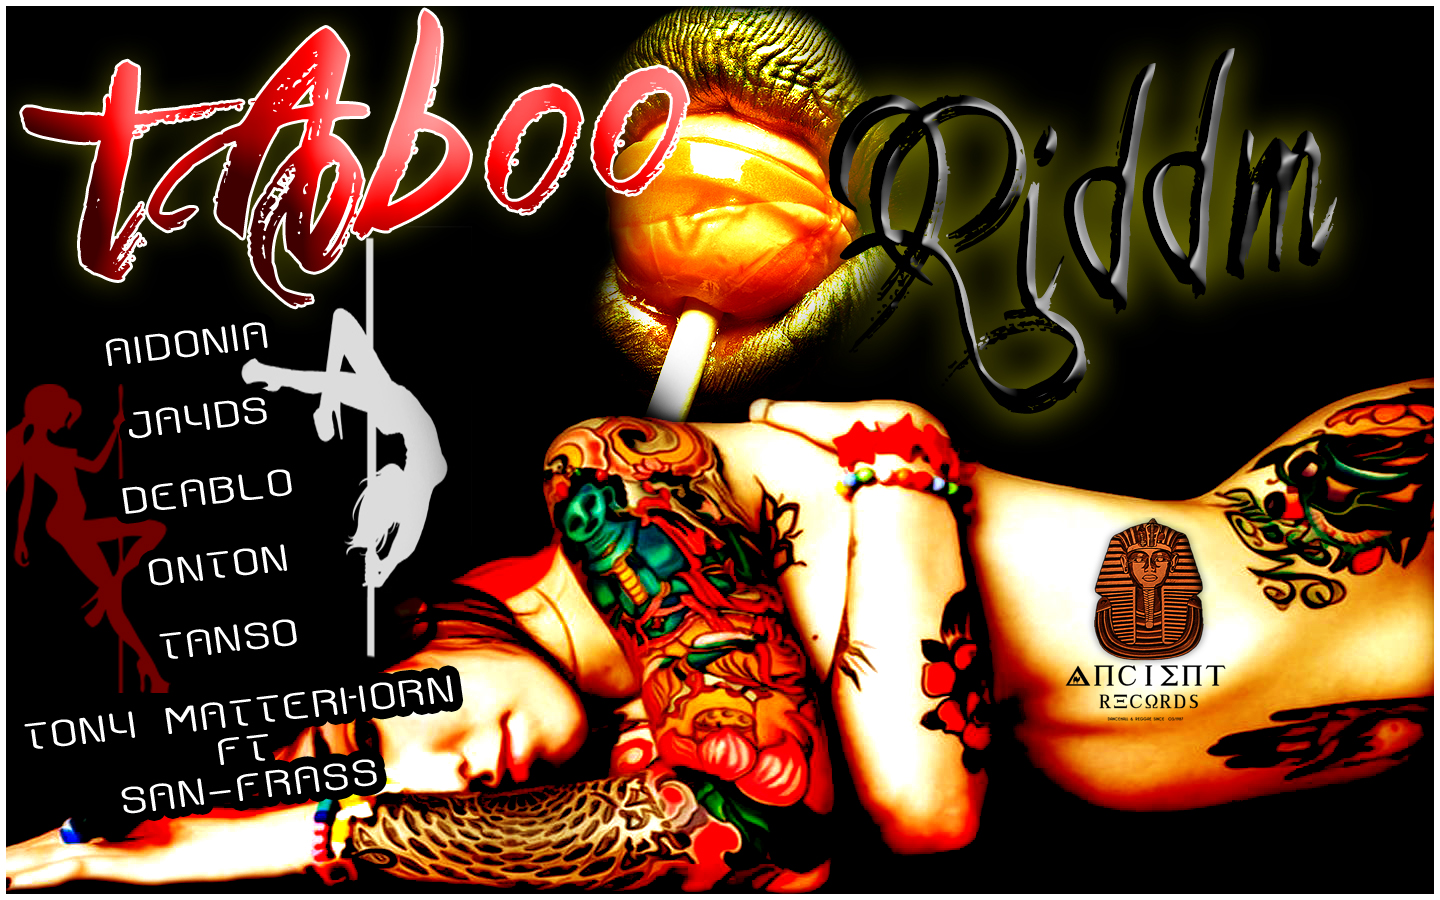 TABOO-RIDDIM-ANCIENT-RECORDS-COVER